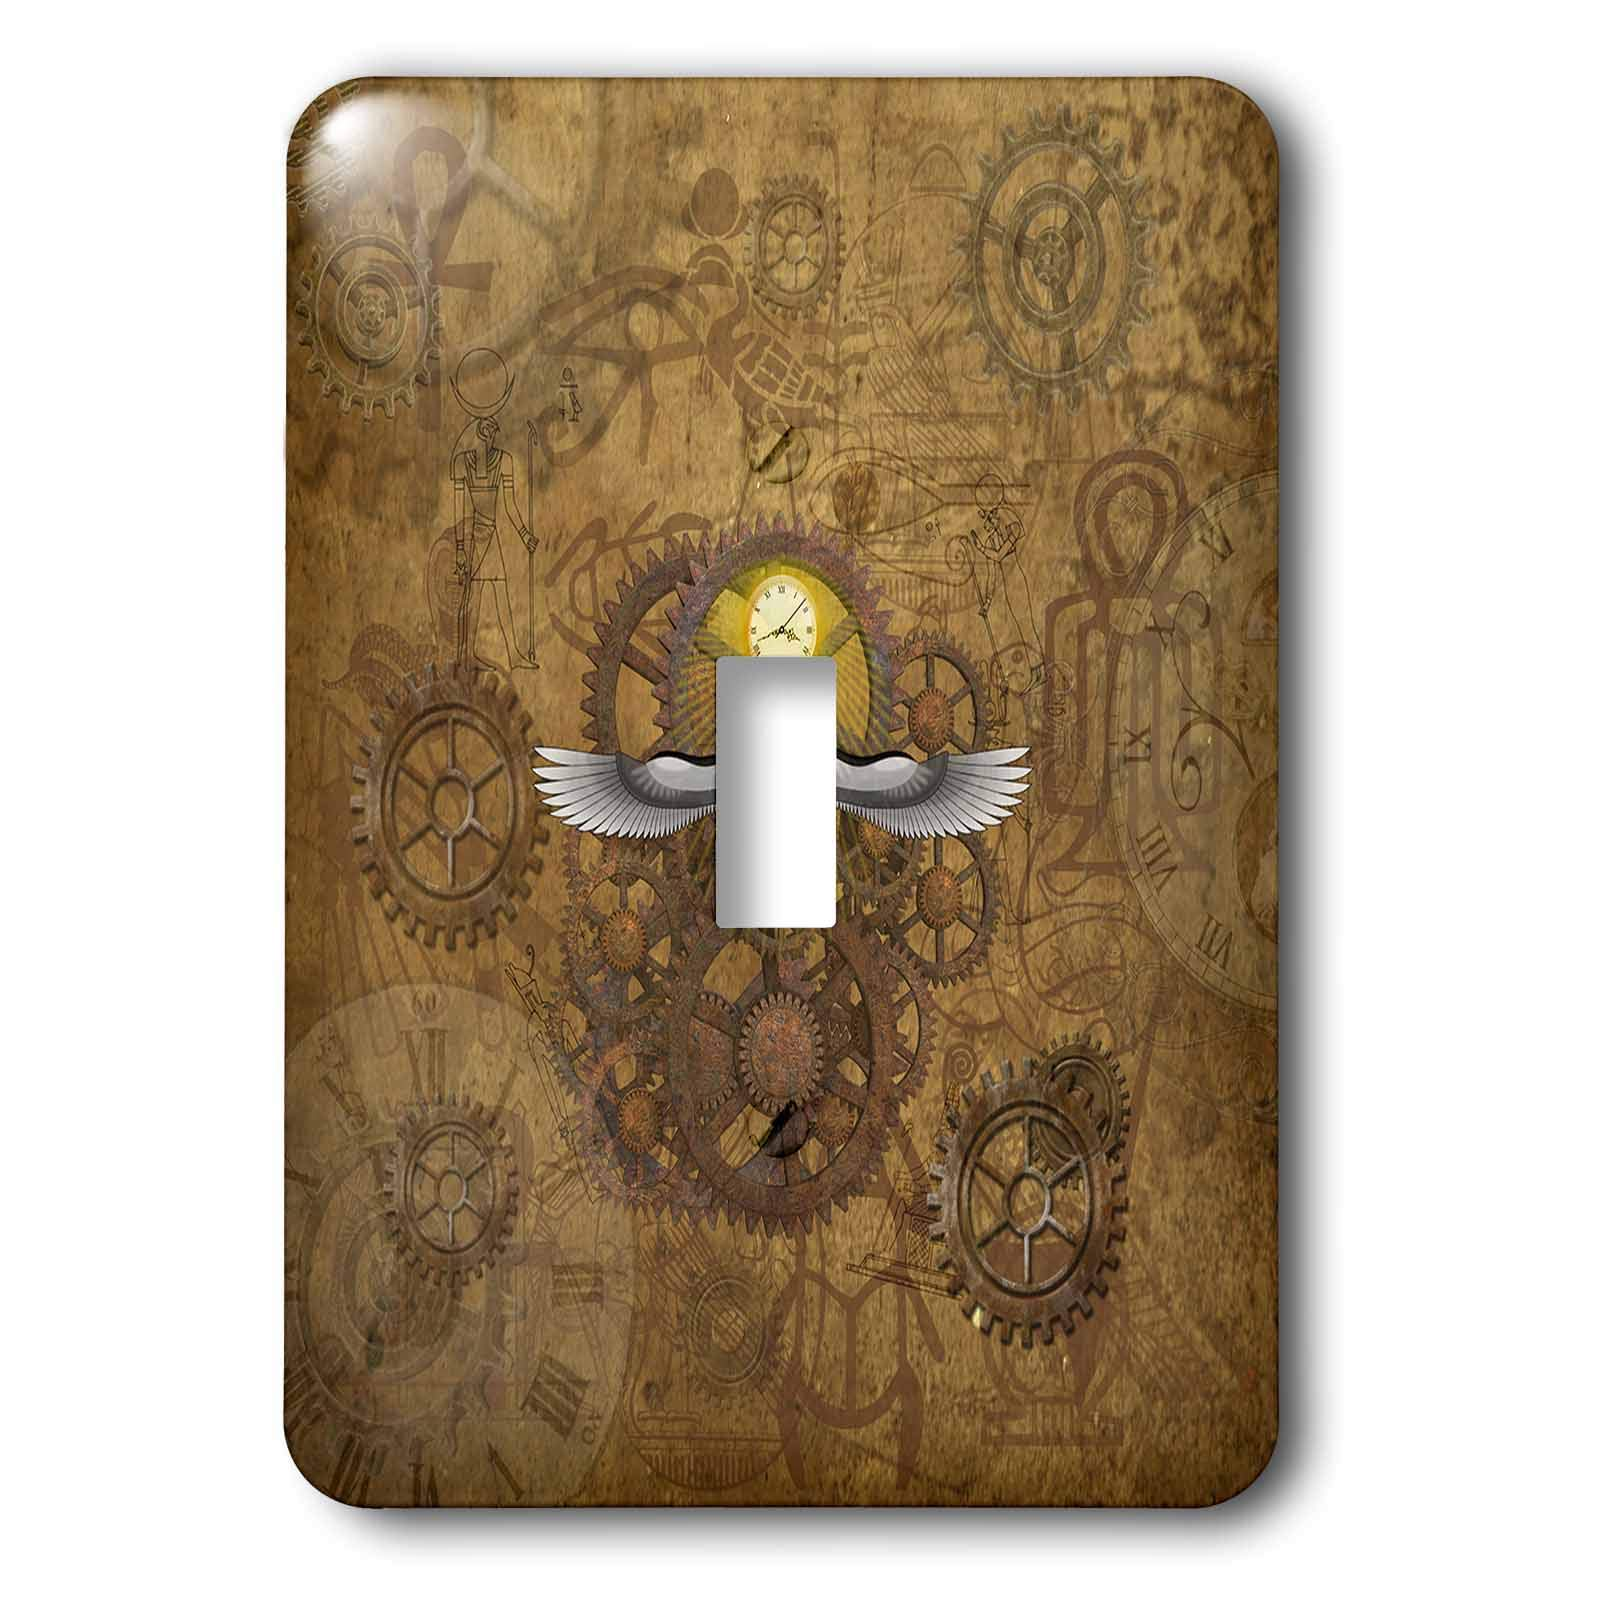 3dRose Lucia - Steampunk - Steampunk Scarab With Clock and Anciant Egyptian Drawings - Light Switch Covers - single toggle switch (lsp_289786_1)